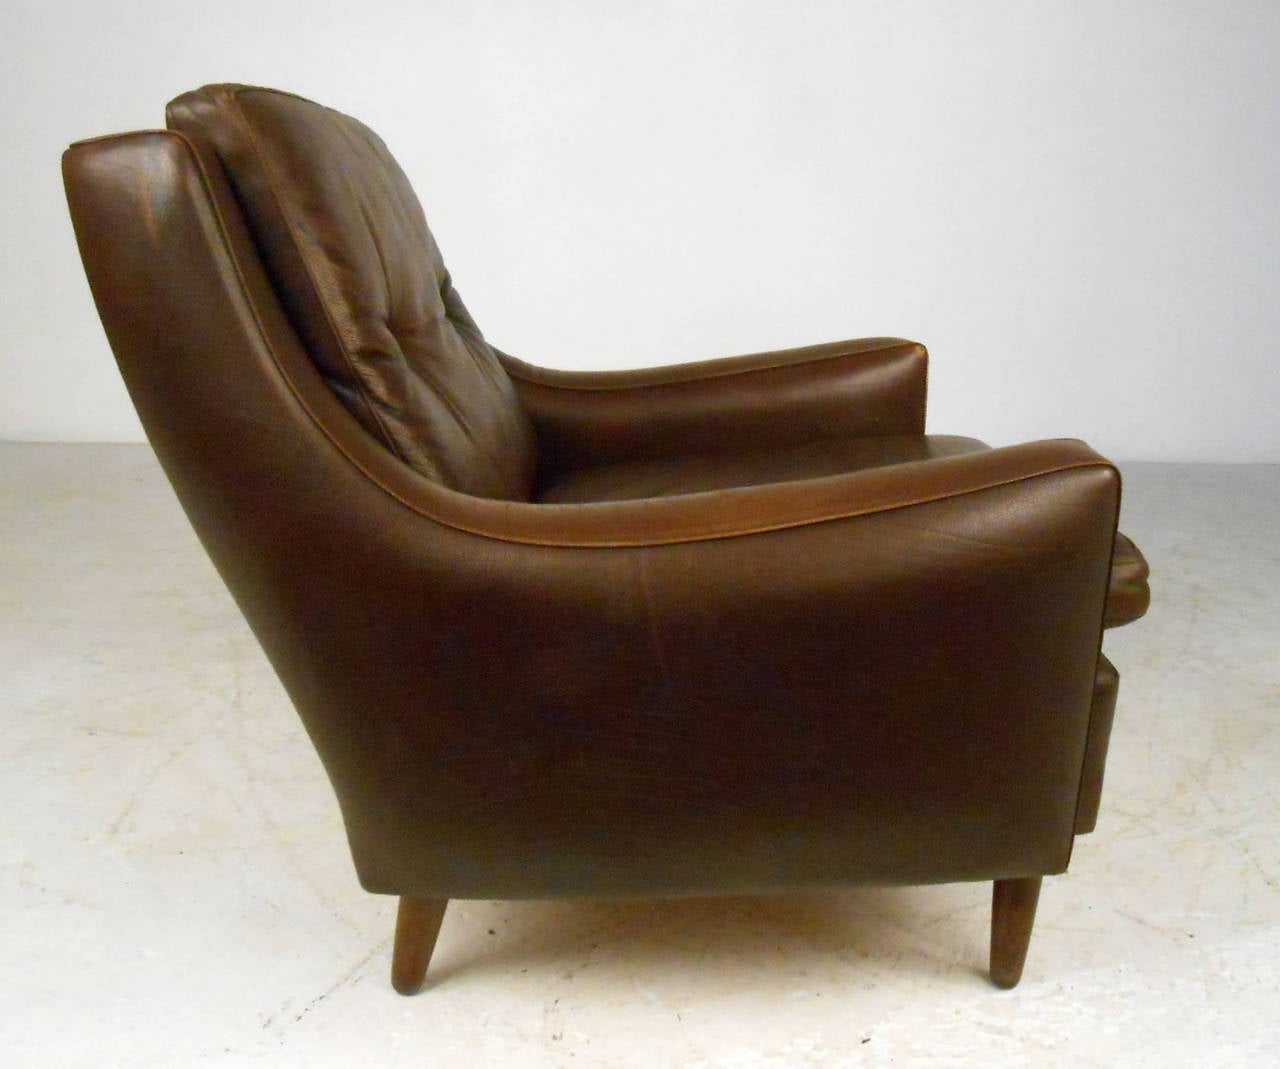 Mid 20th century mid century modern tufted brown leather club chair for sale